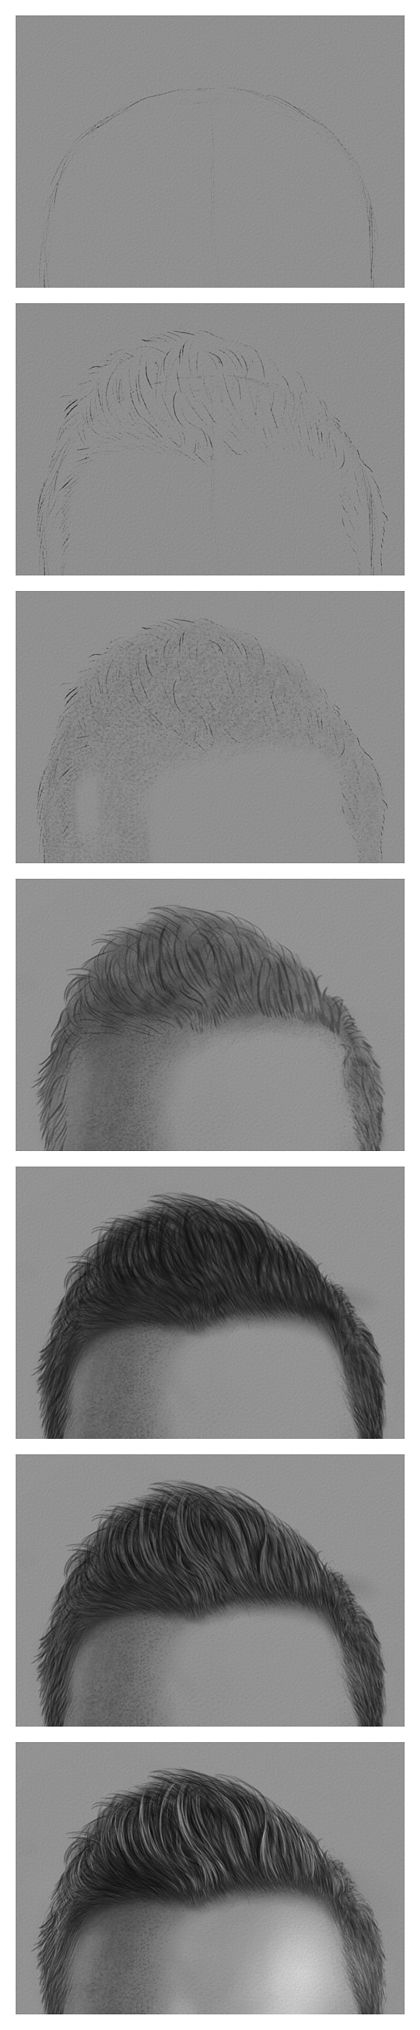 Drawing The Hair With Charcoal And Chalk €� Steps 17